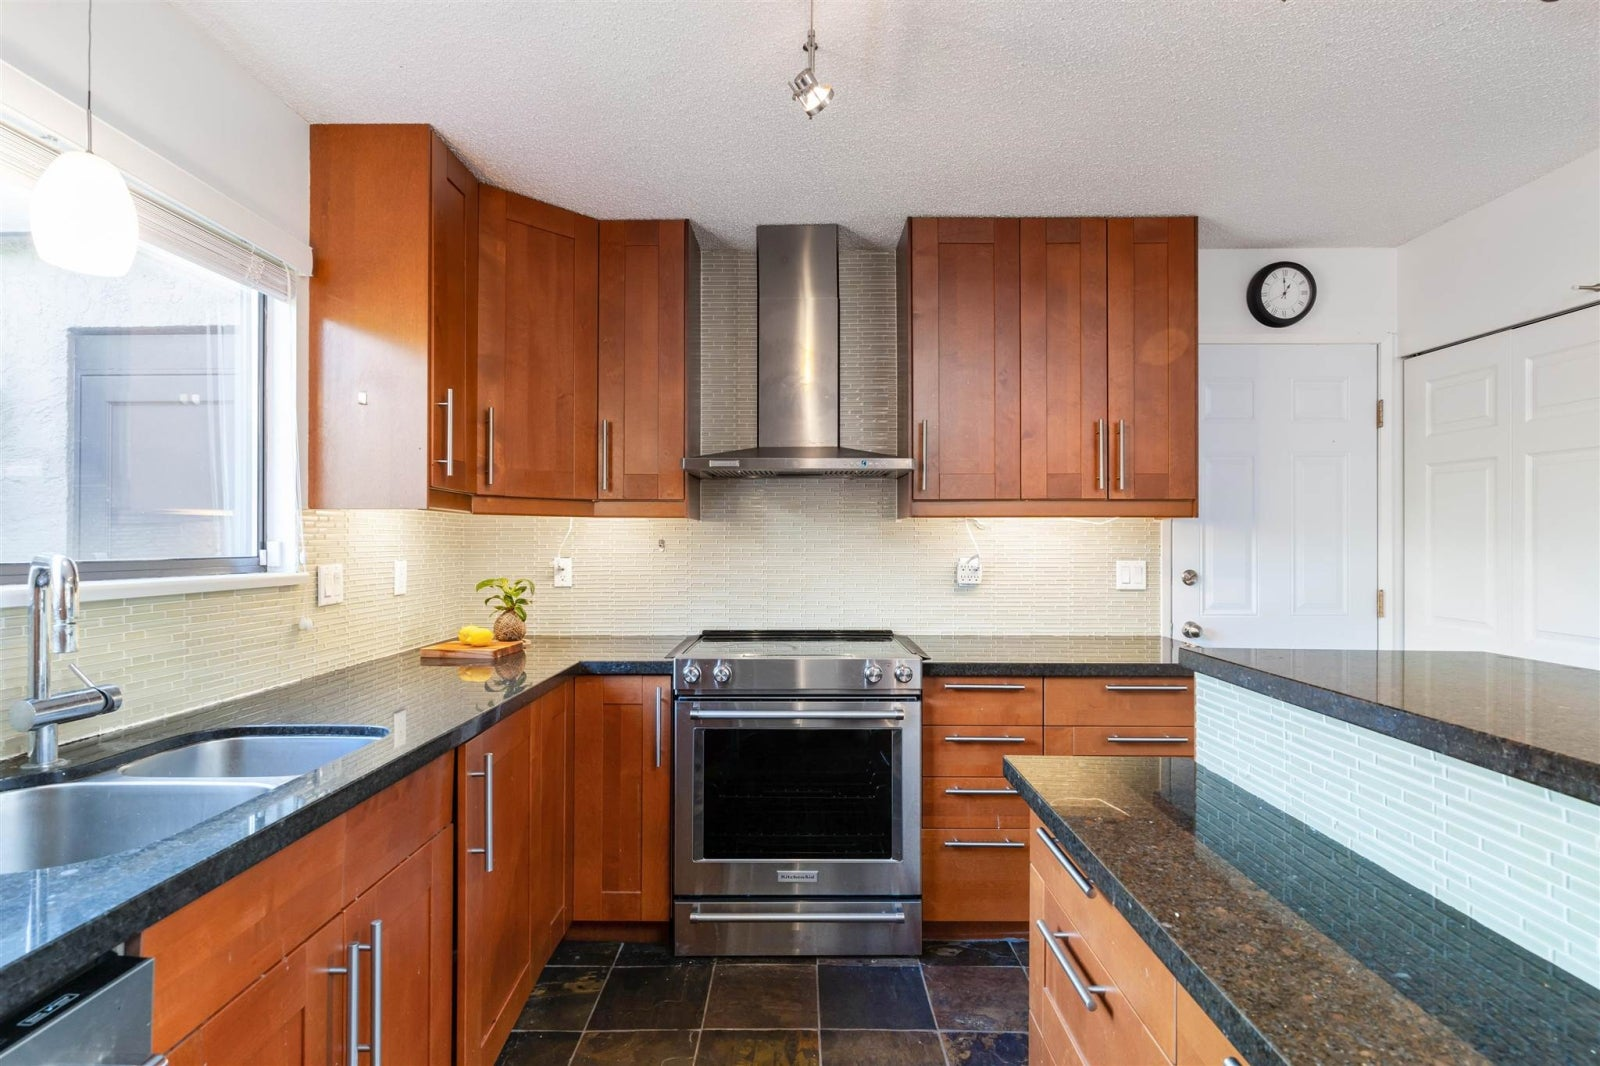 4 226 E 10TH STREET - Central Lonsdale Townhouse for sale, 3 Bedrooms (R2596161) #10